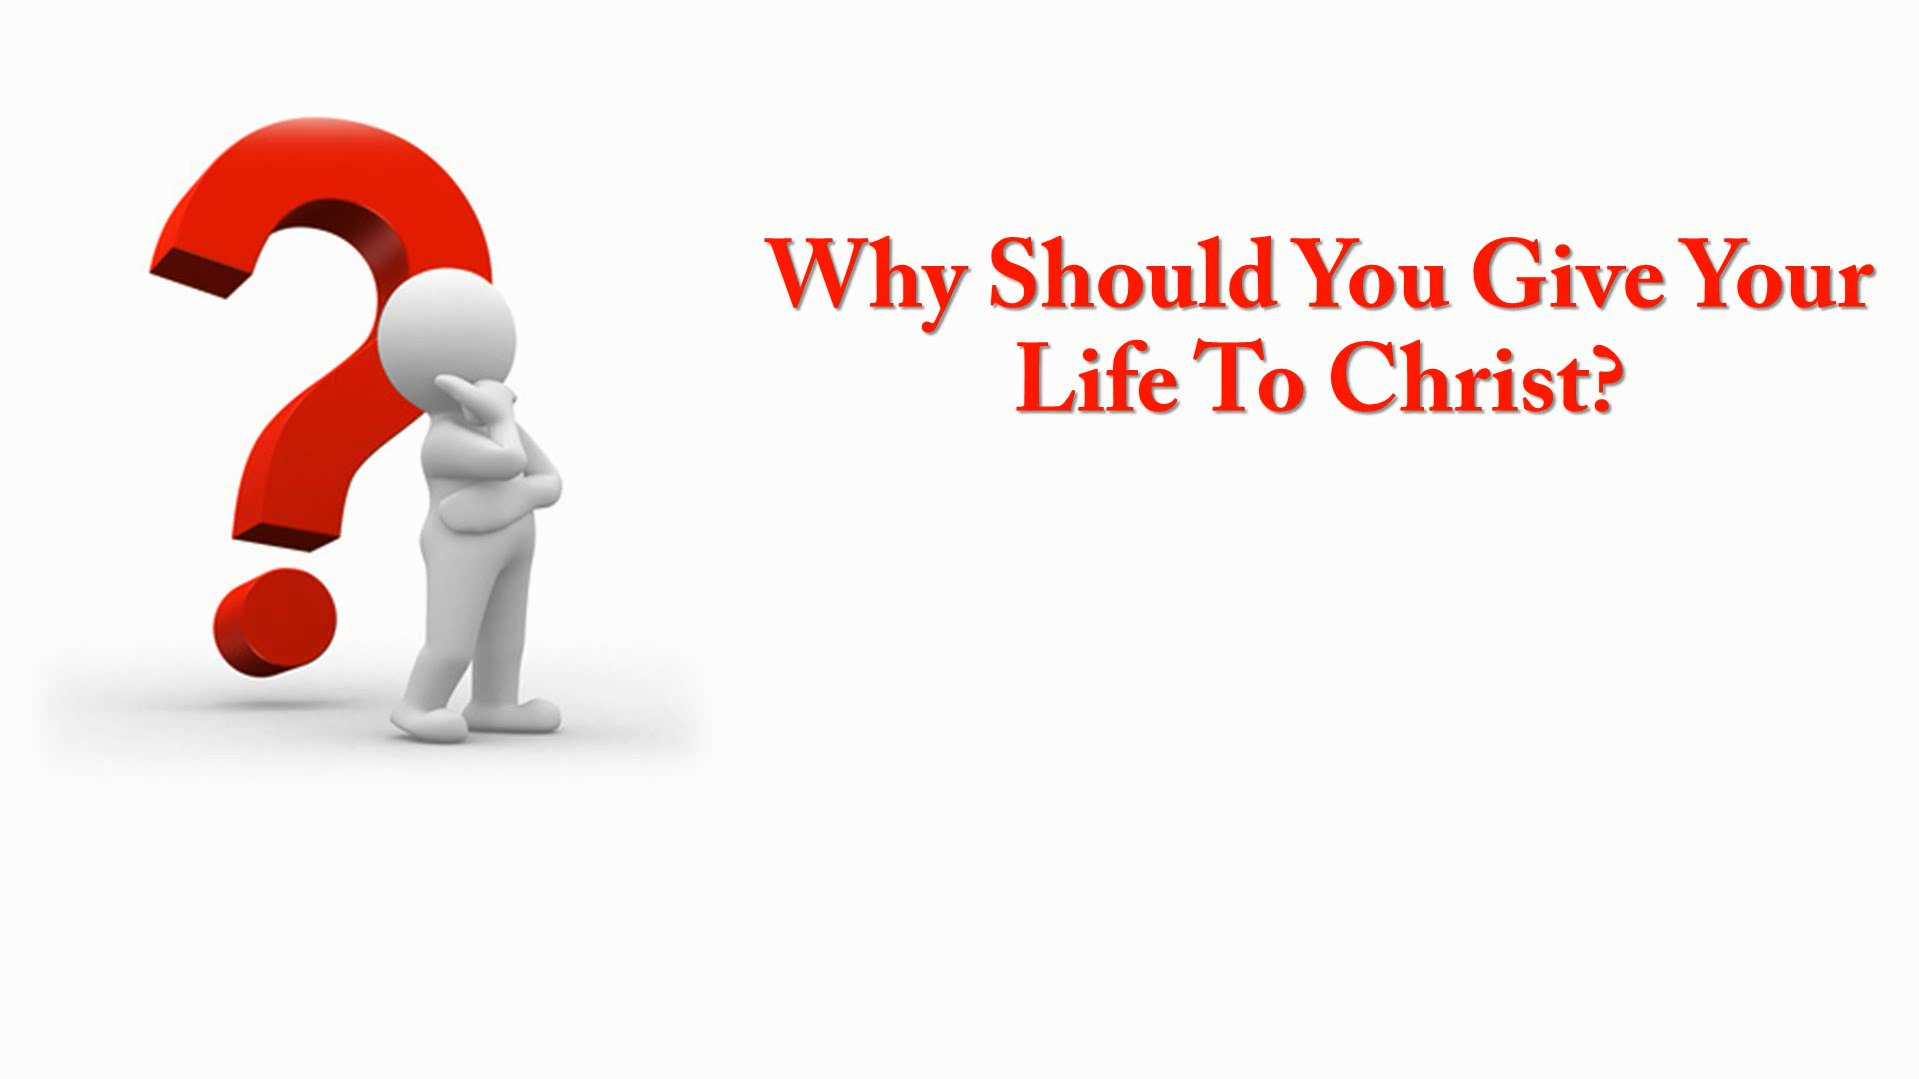 Why Should You Give Your Life To Christ?